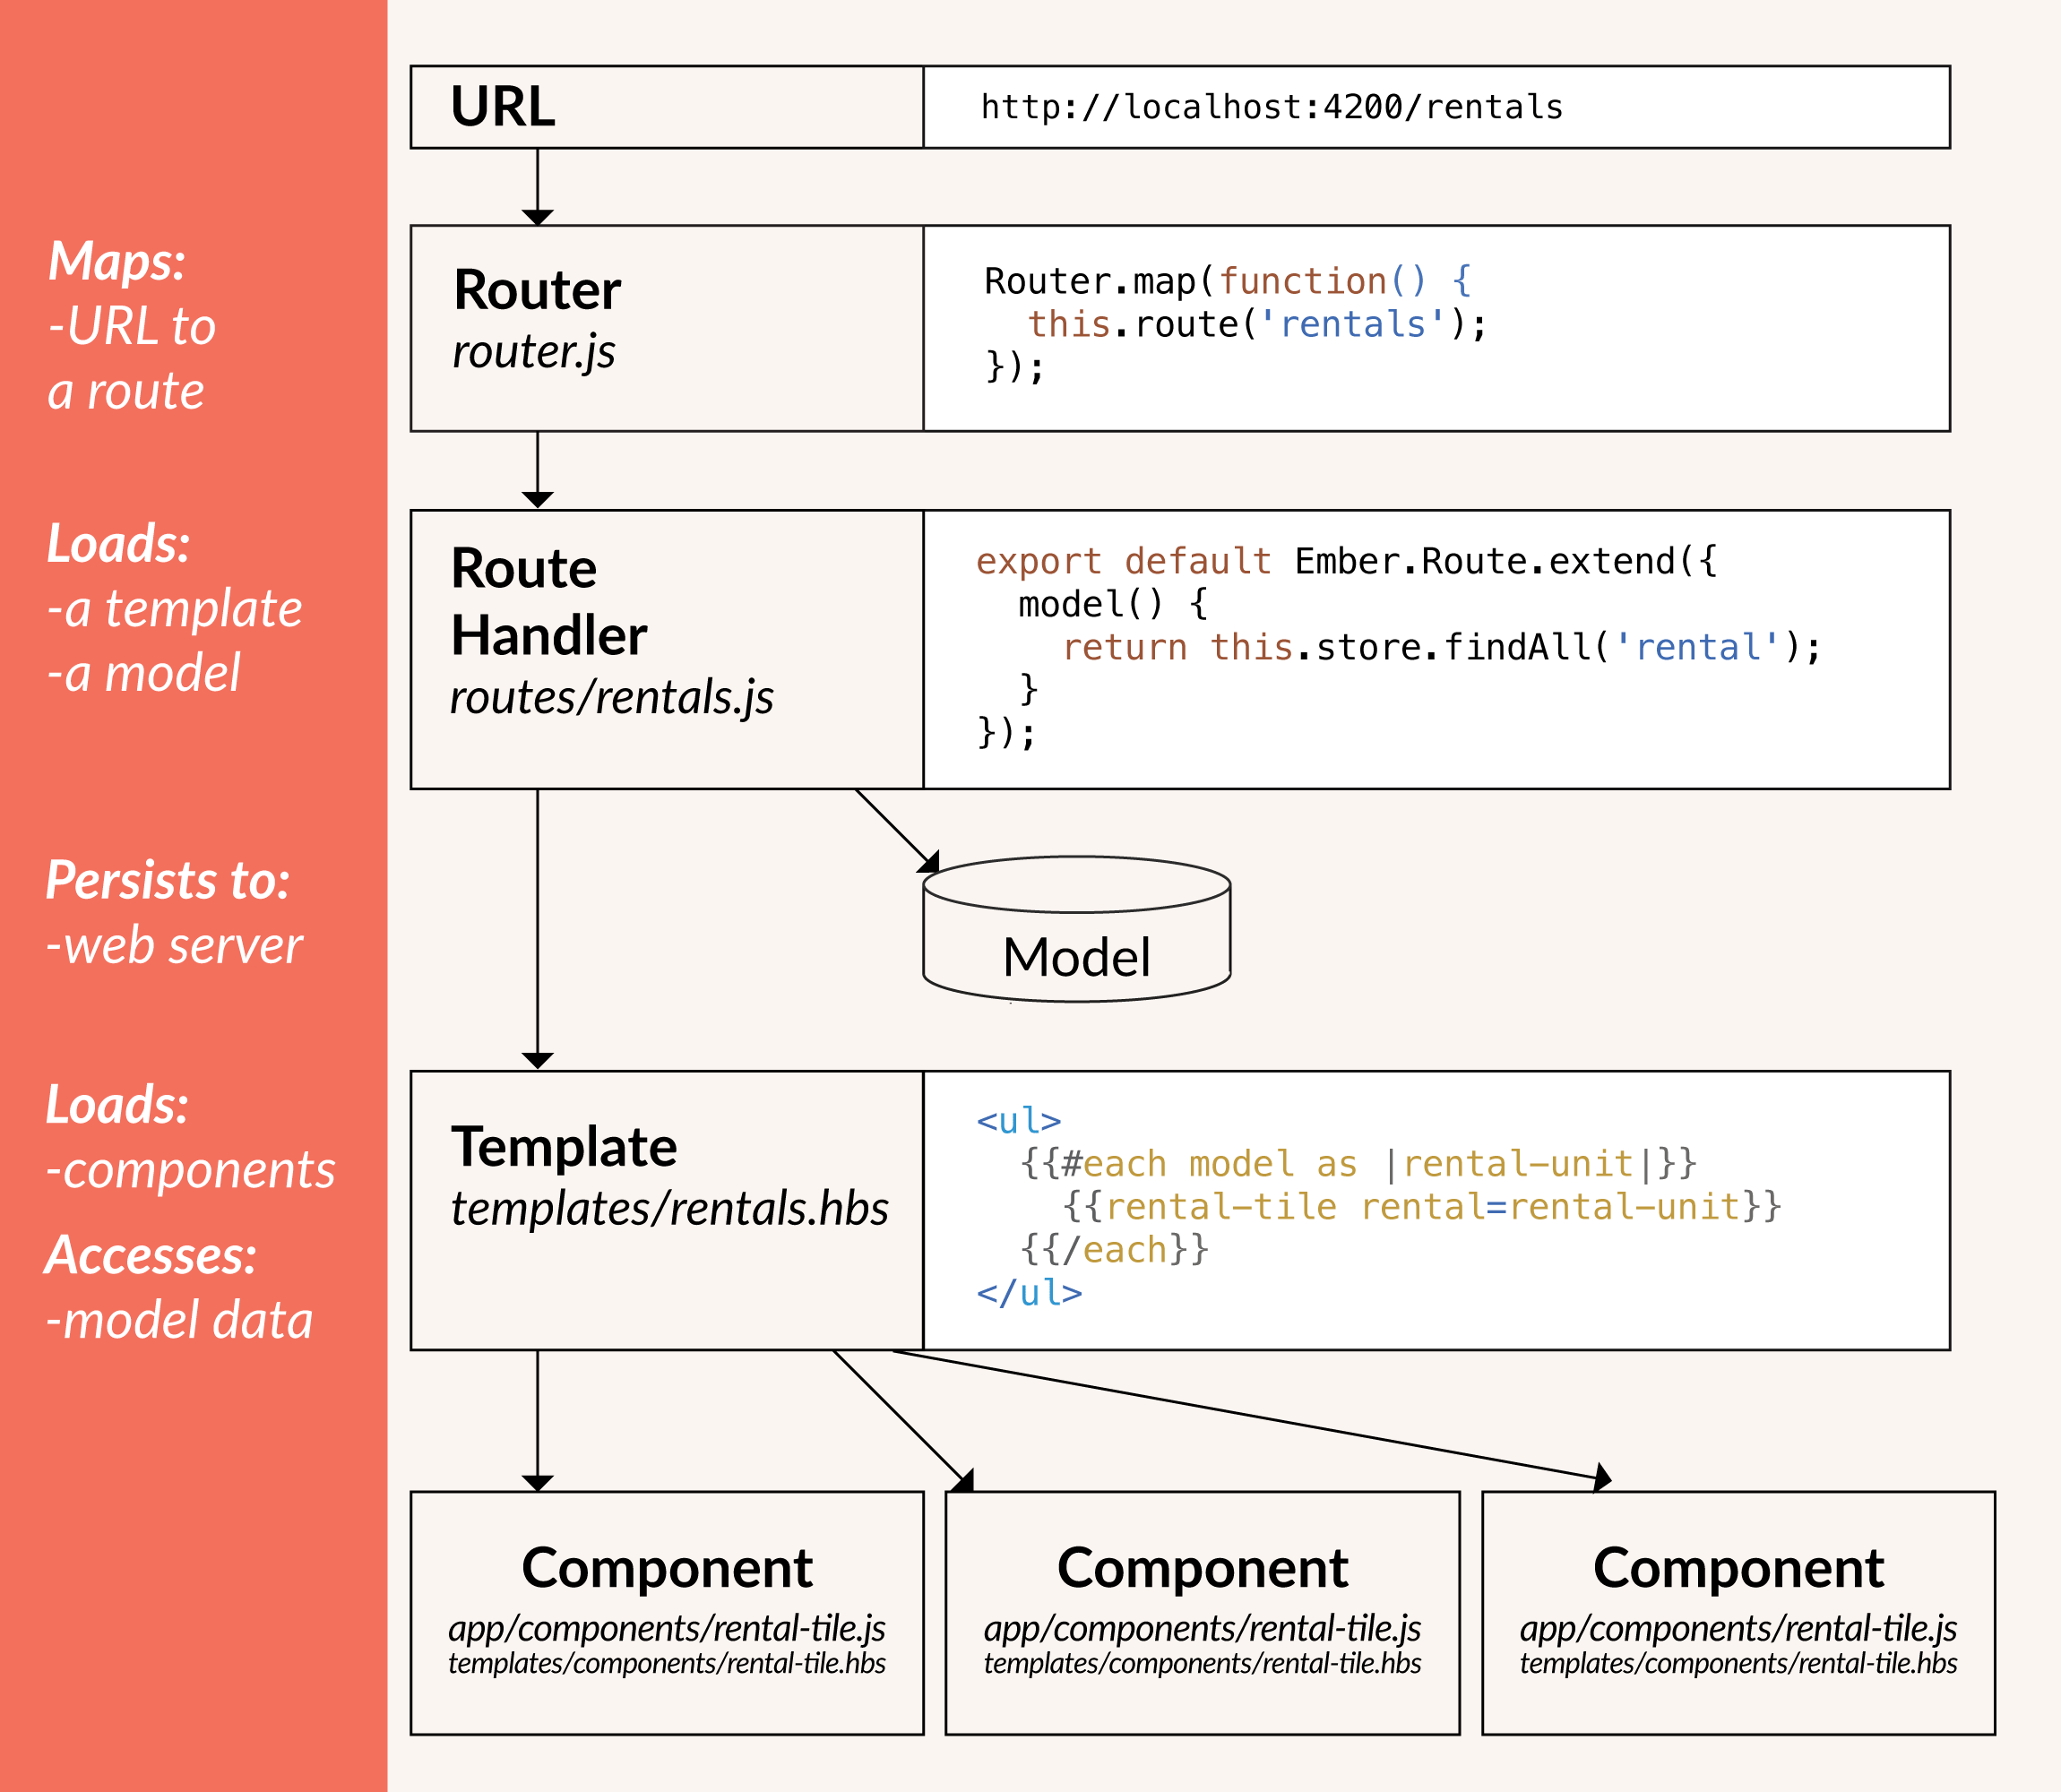 Ember Core Concepts